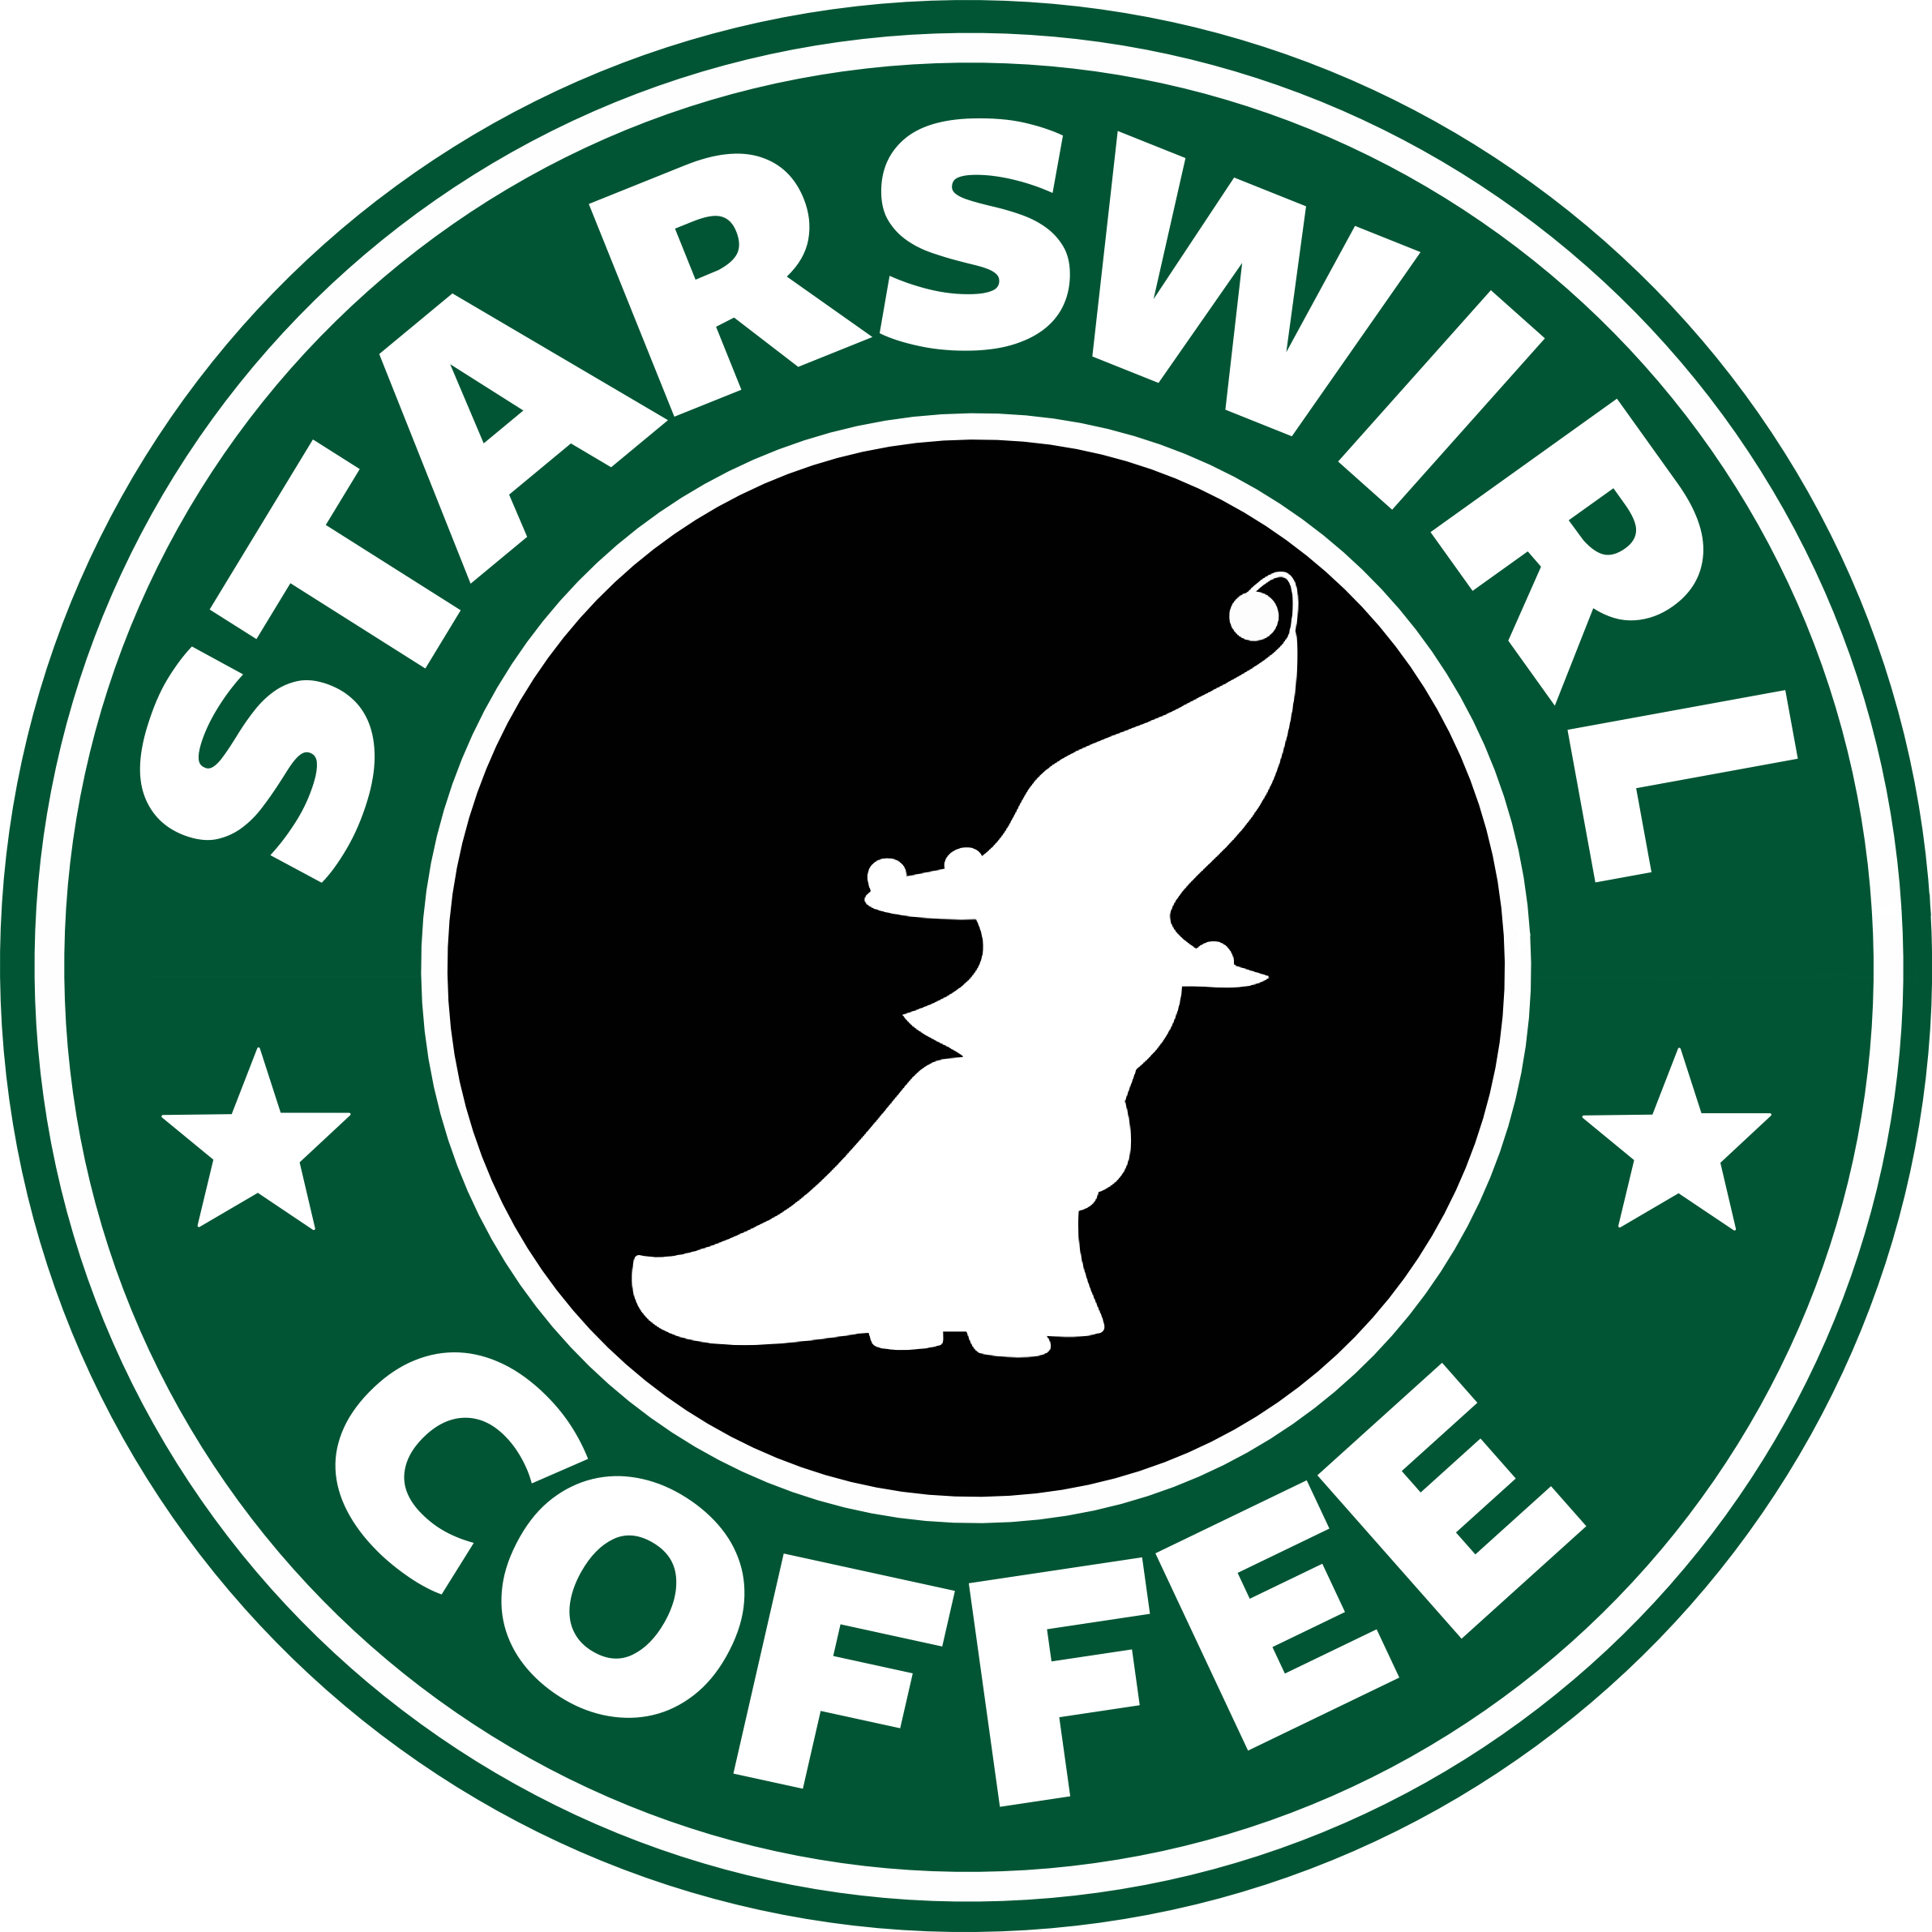 Starbucks Clipart | Free download on ClipArtMag